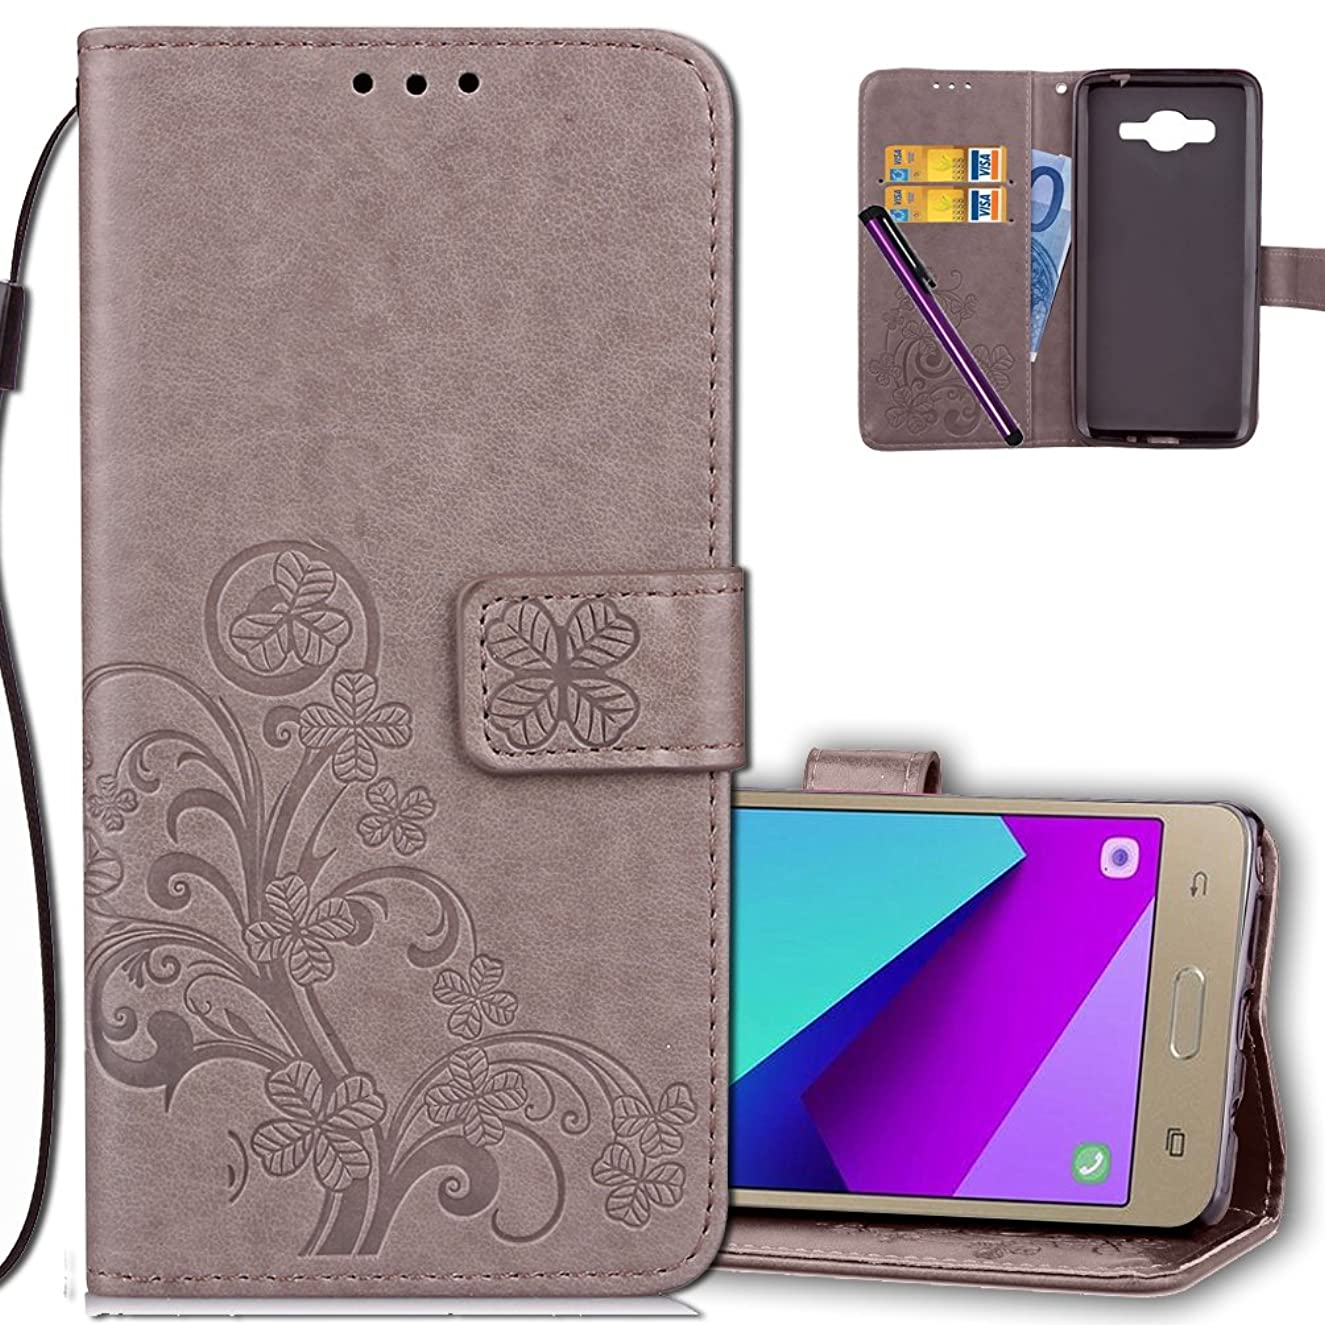 J2 Prime Wallet Case Leather COTDINFORCA Premium PU Embossed Design Magnetic Closure Protective Cover with Card Slots for Samsung Galaxy J2 Prime SM-G532 (5.0 inch). Luck Clover Grey